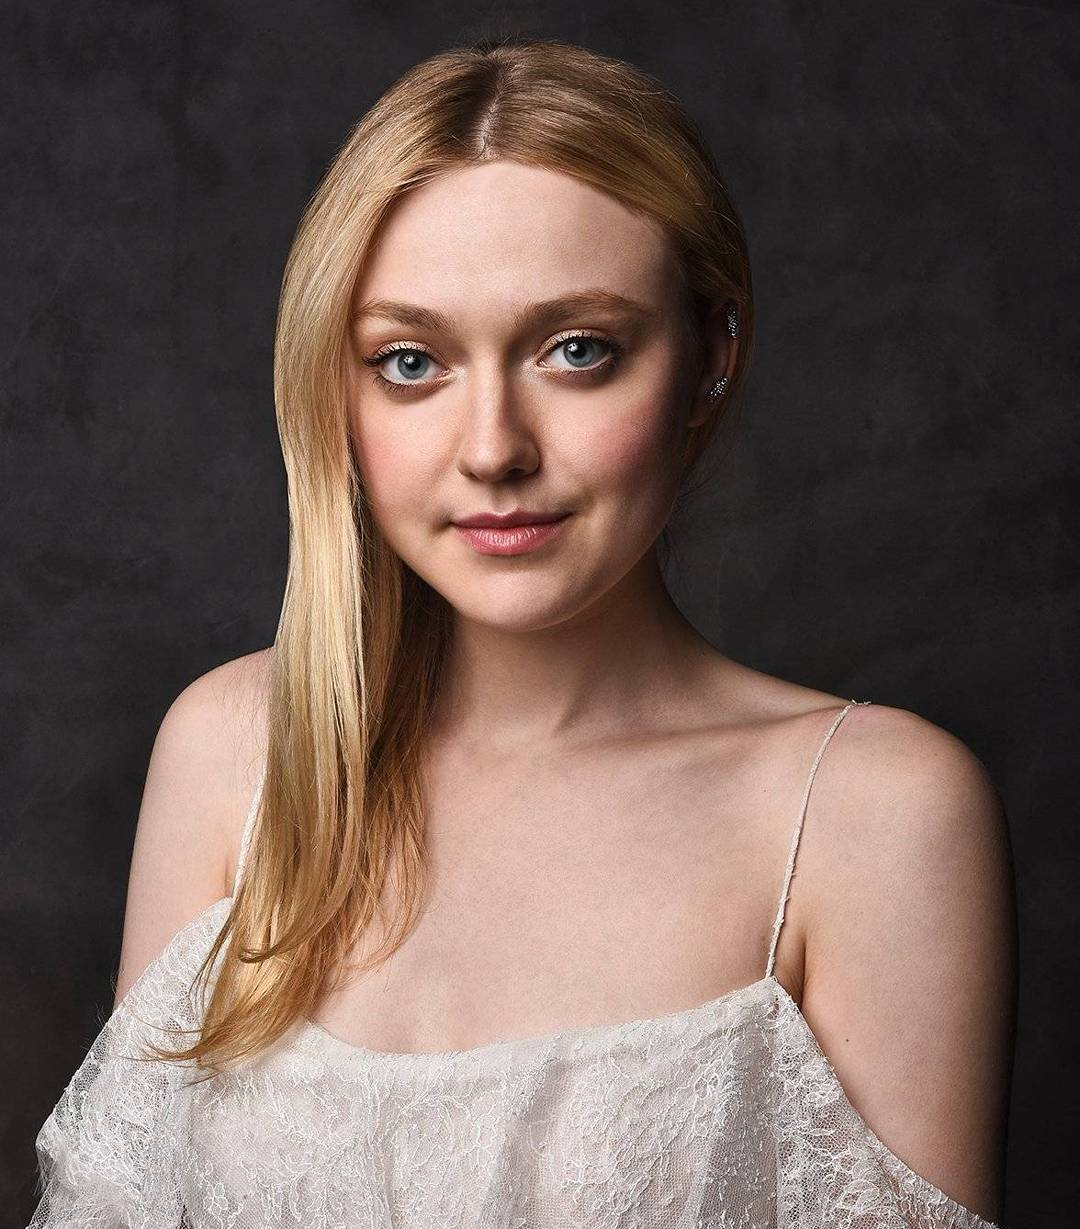 Dakota Fanning Beautiful Pictures - HD Actress Photo